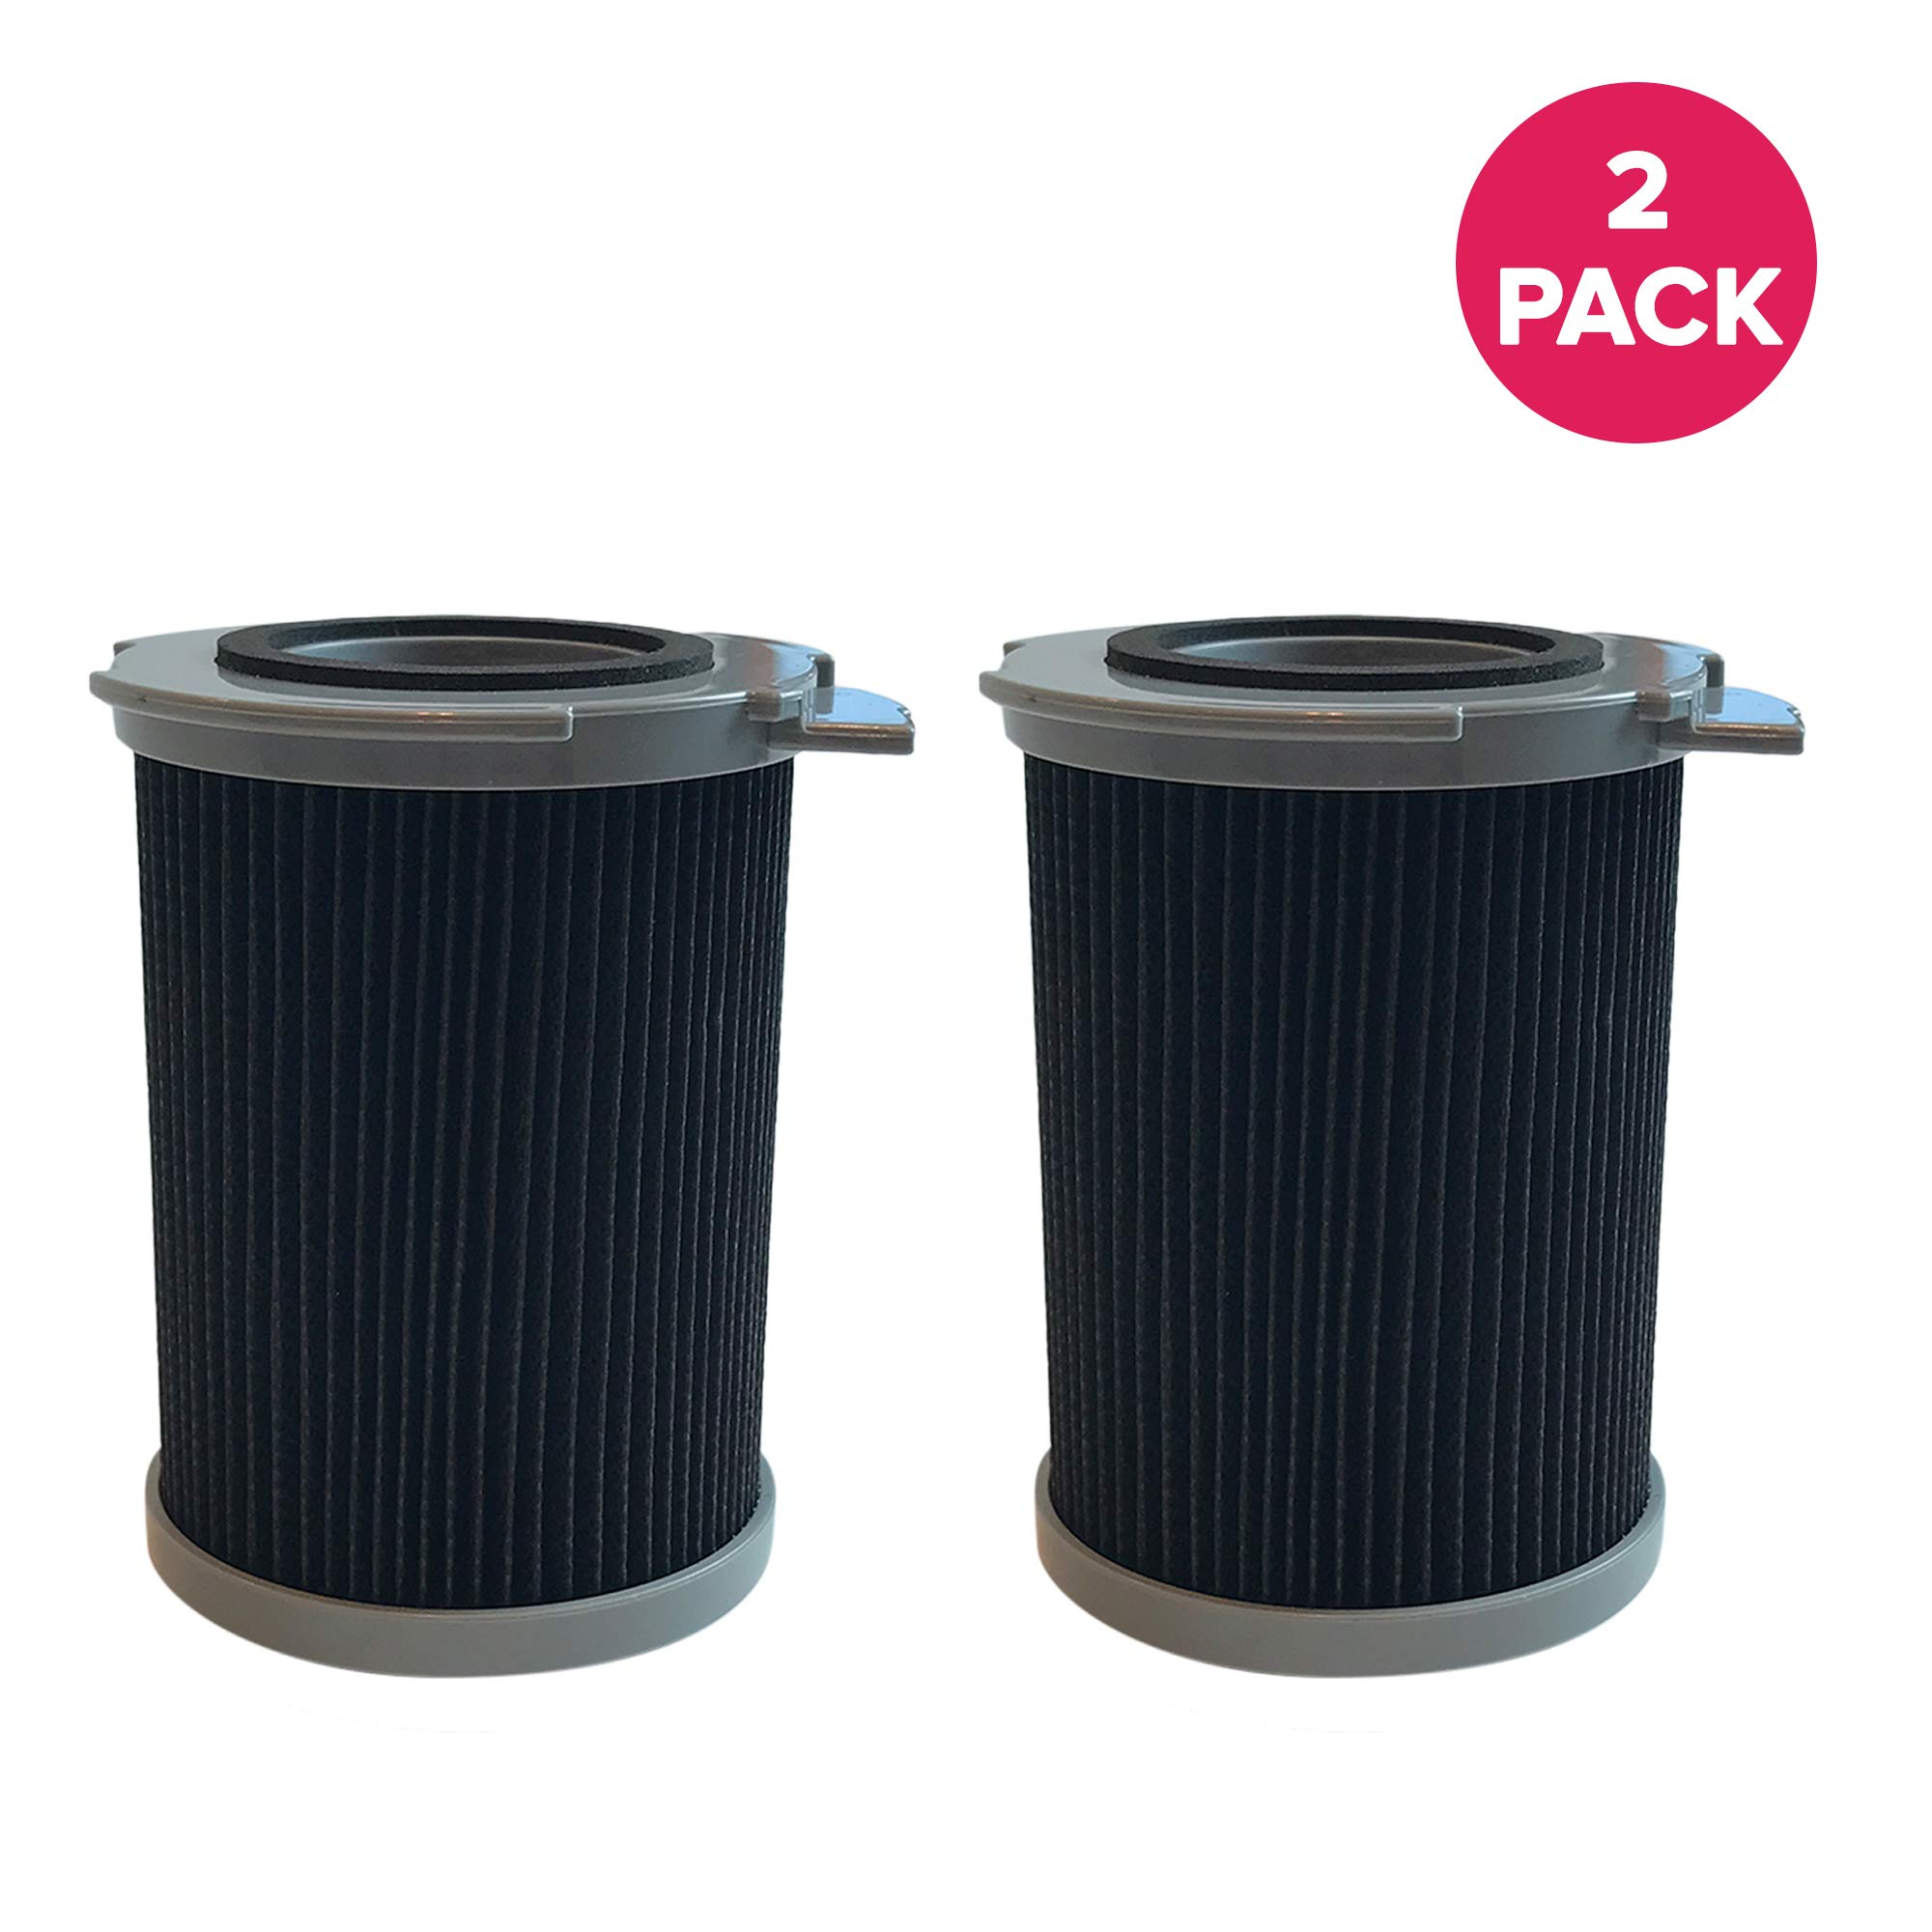 Crucial Vacuum Filter Replacement Parts # 59134033 - Compatible with Hoover Filters - Fits Hoover Windtunnel Bagless Air Filter for Compact Vacs, Vacuums, Vac, Home, Office Use - Washable (2 Pack)